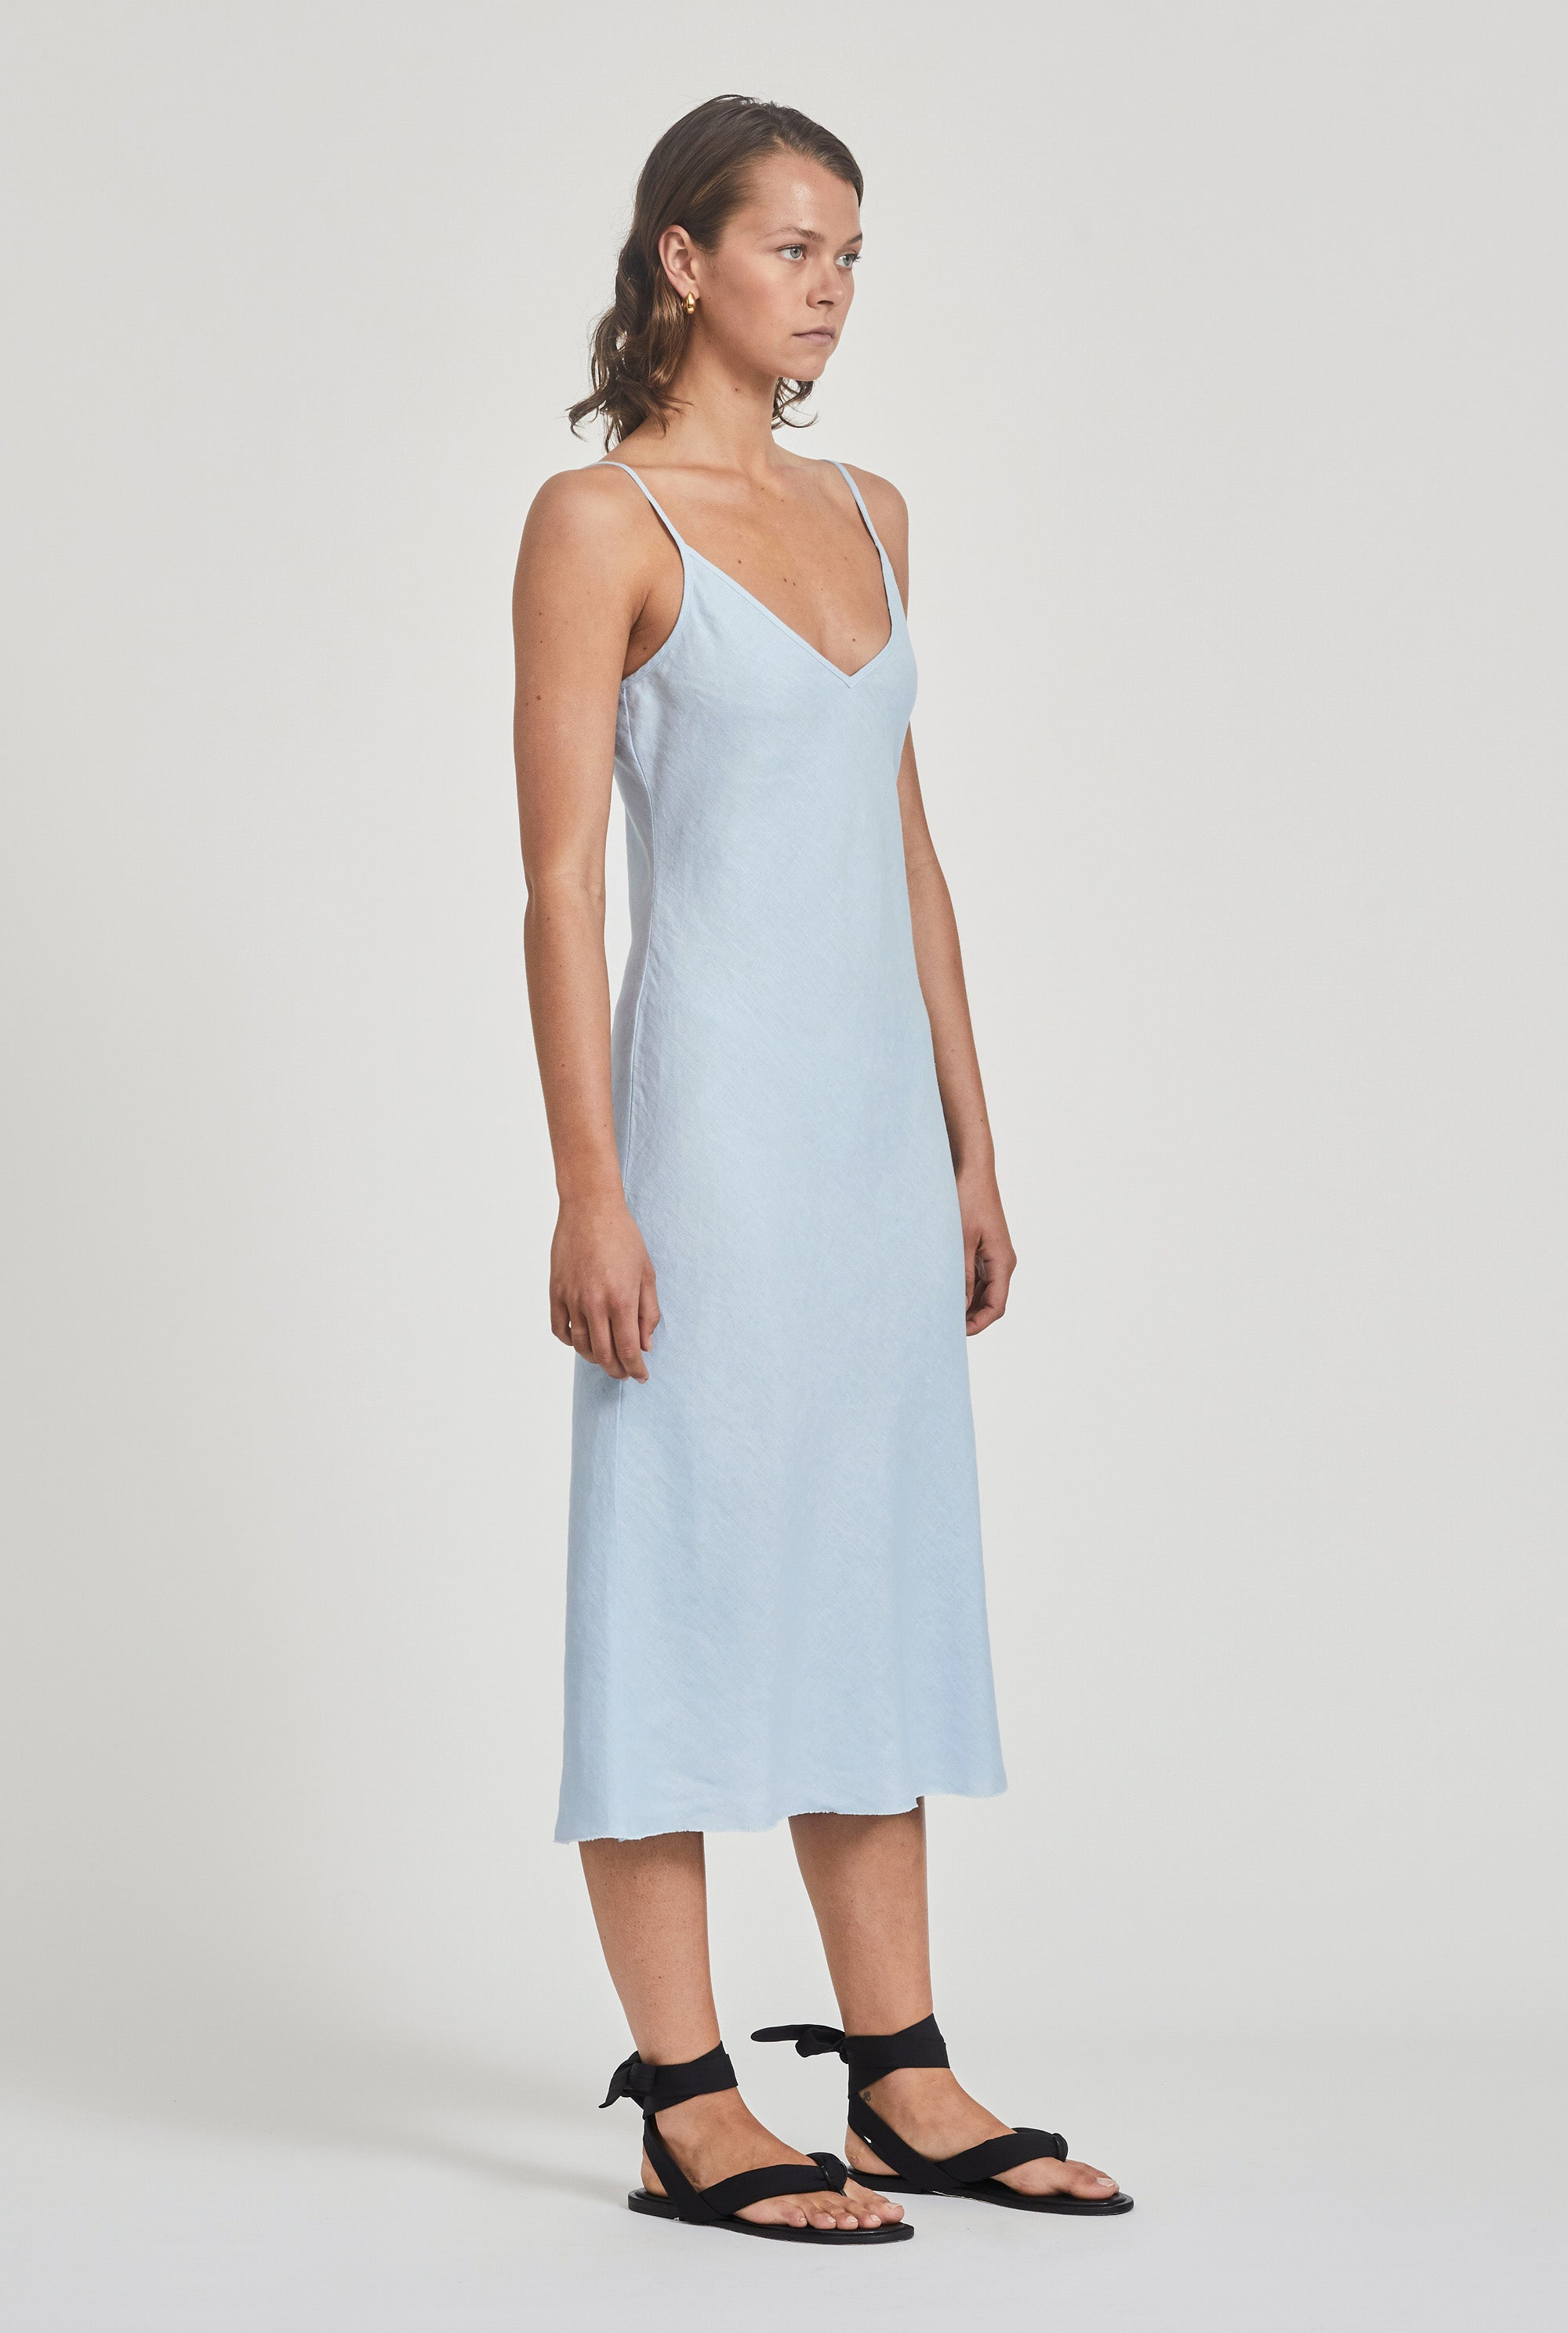 Linen Bias Slip Dress - Spring Blue